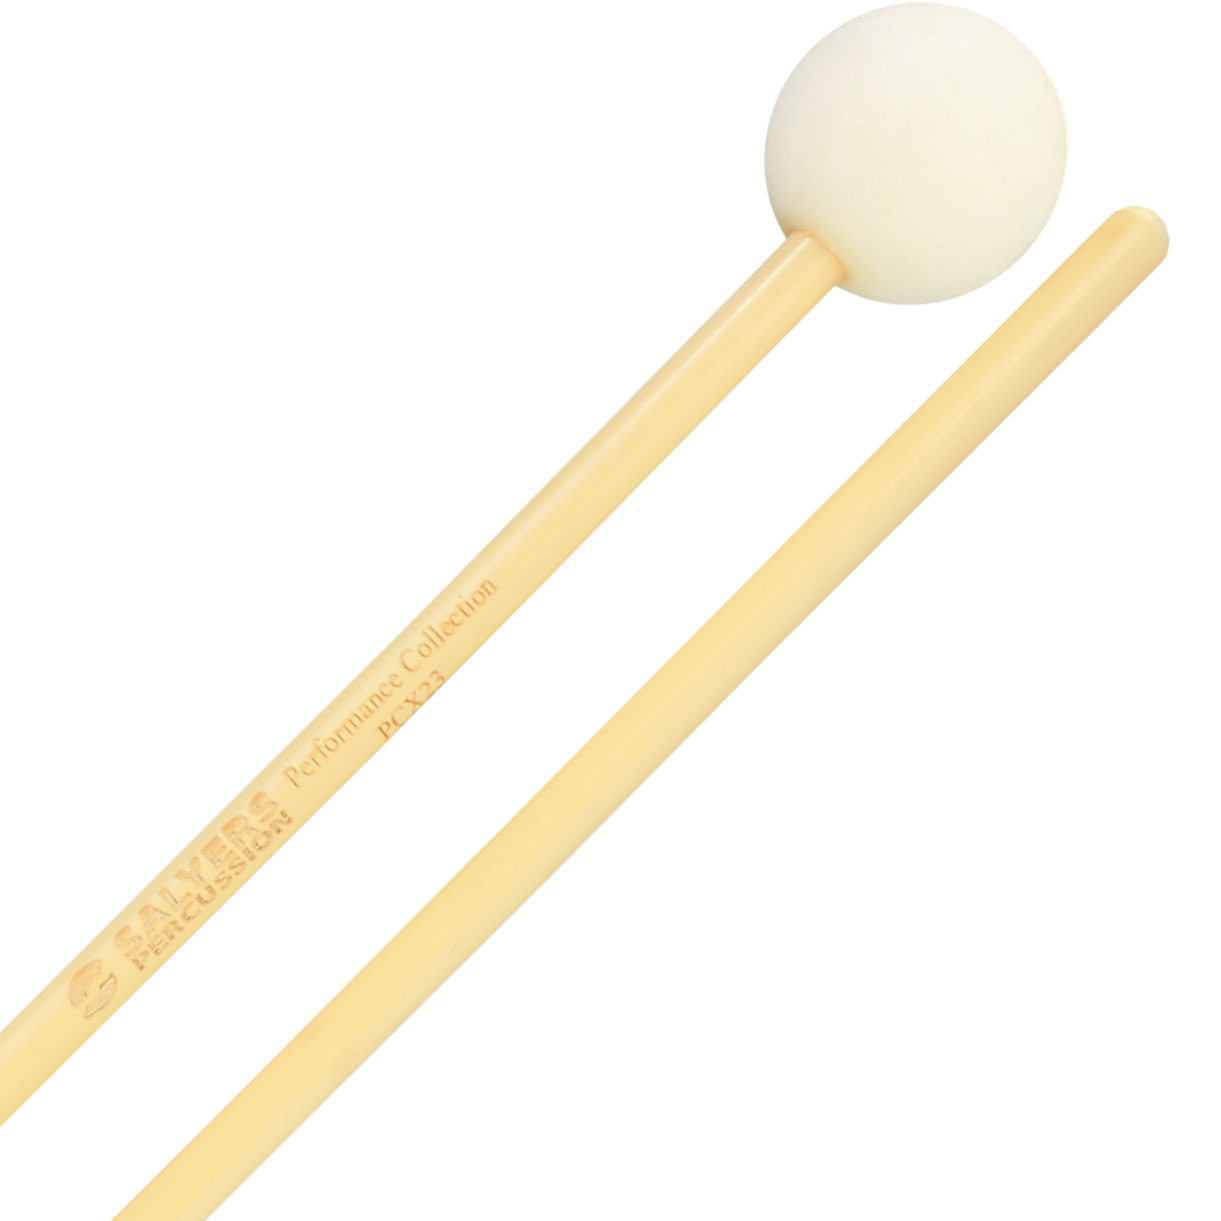 "Salyers Percussion Performance Collection 1.25"" Nylon Xylophone/Bell Mallets"